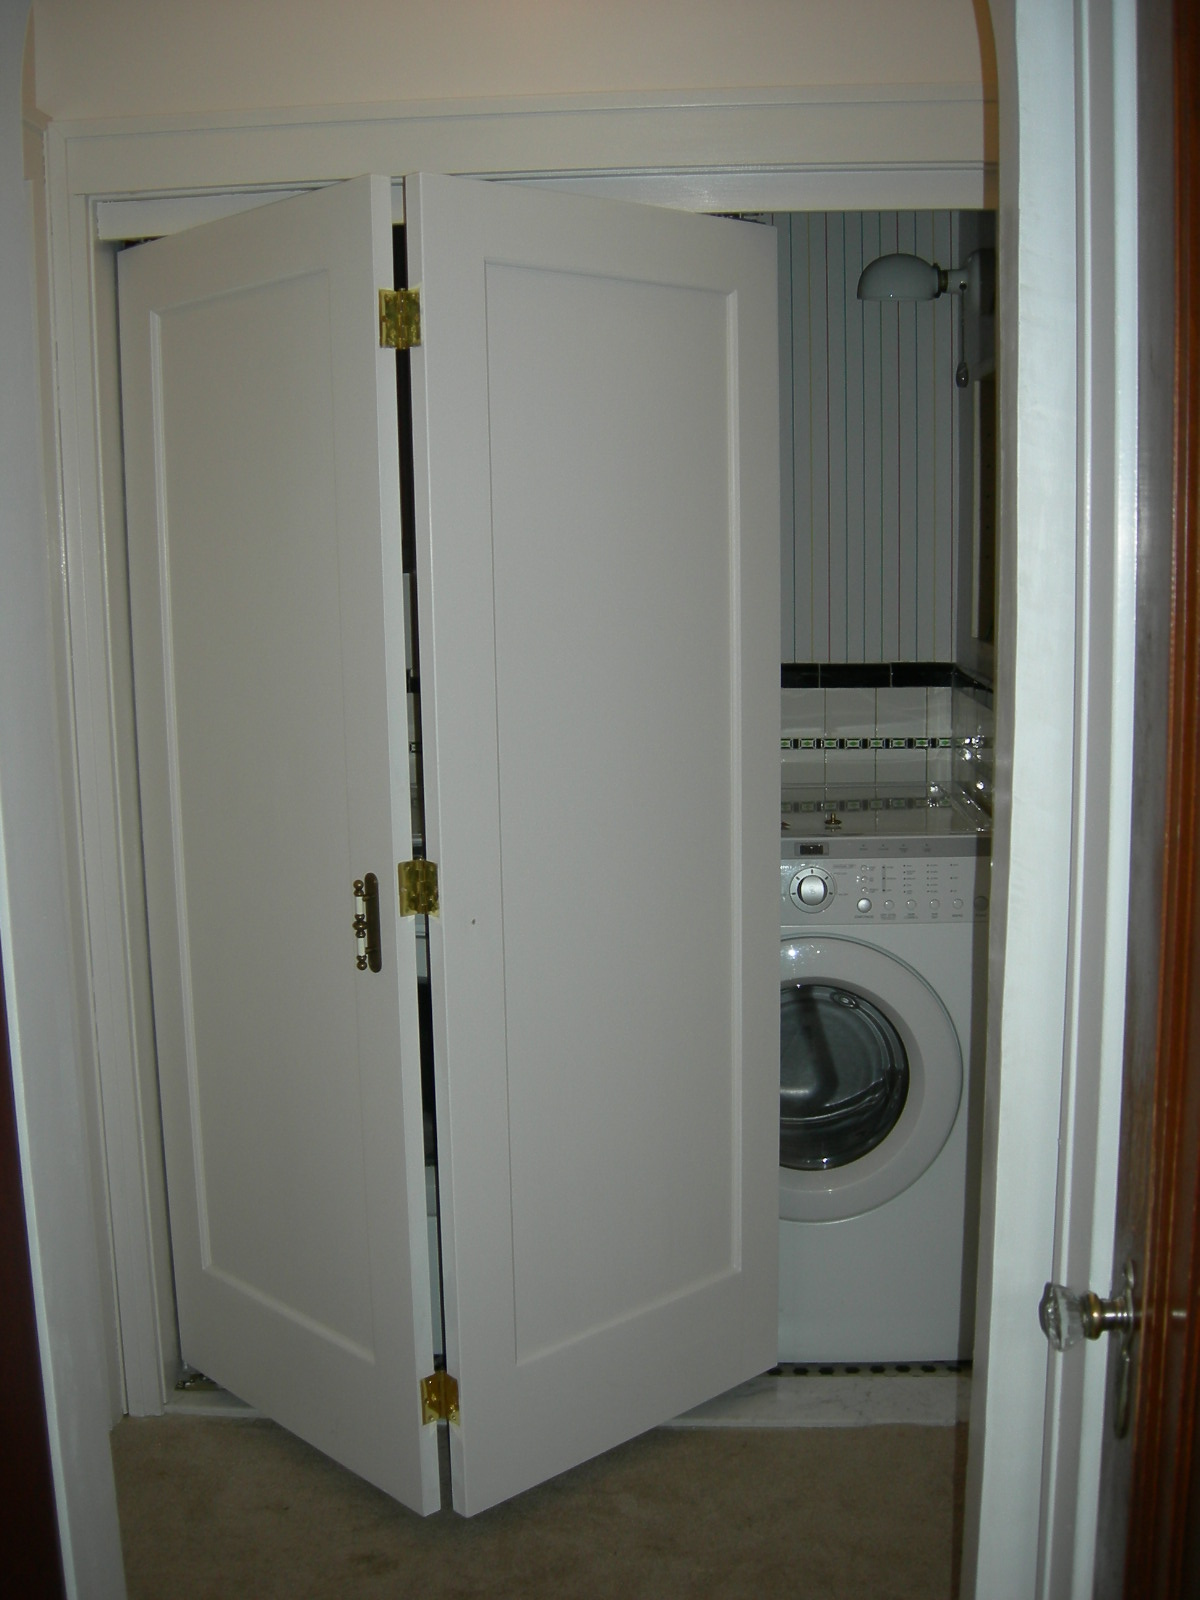 Folding doors folding doors laundry room for Laundry room door ideas